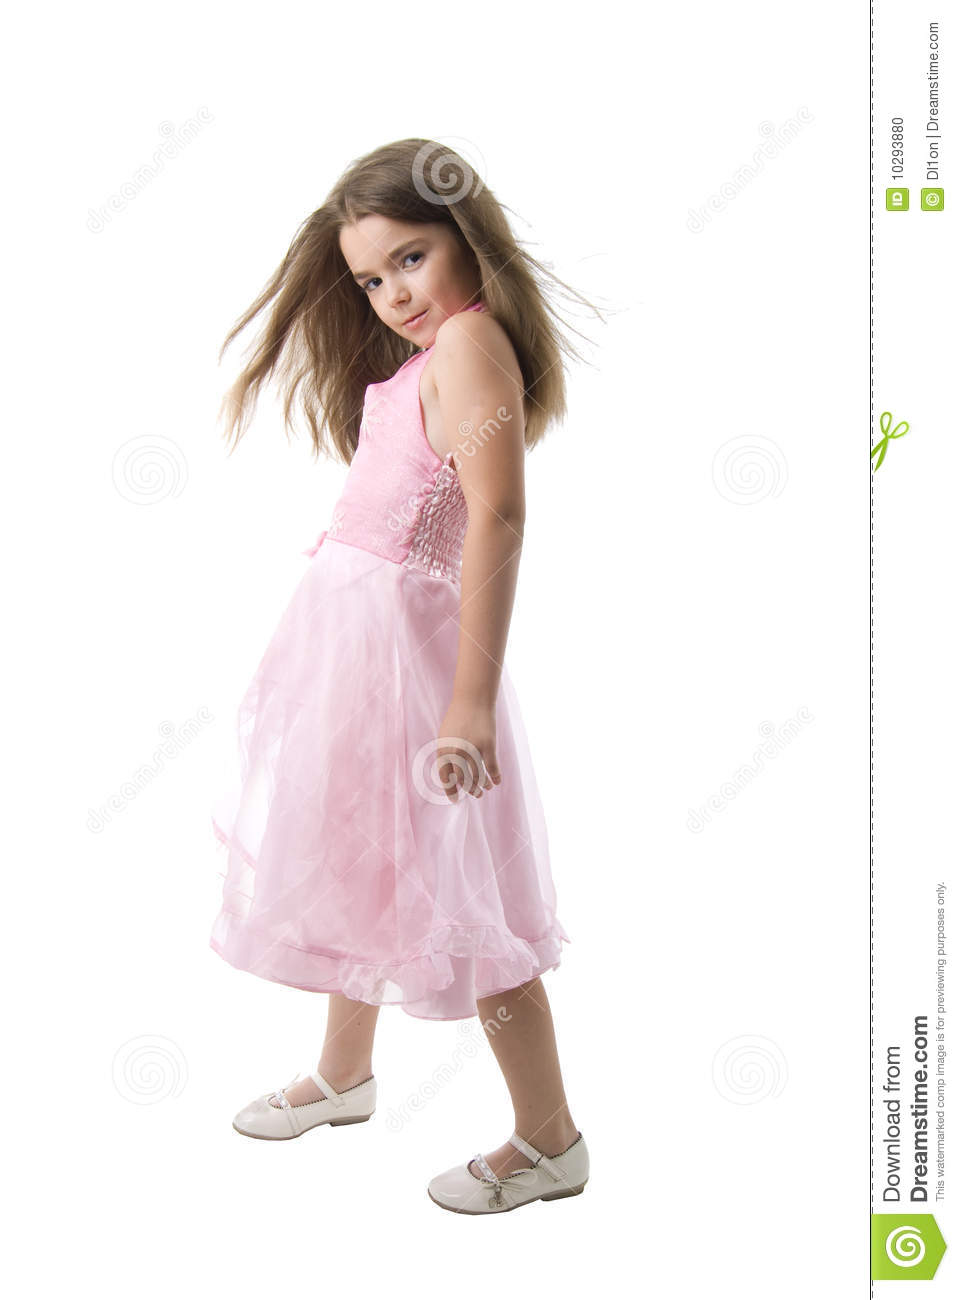 Young Fashion Model Stock Photo Image Of Isolated